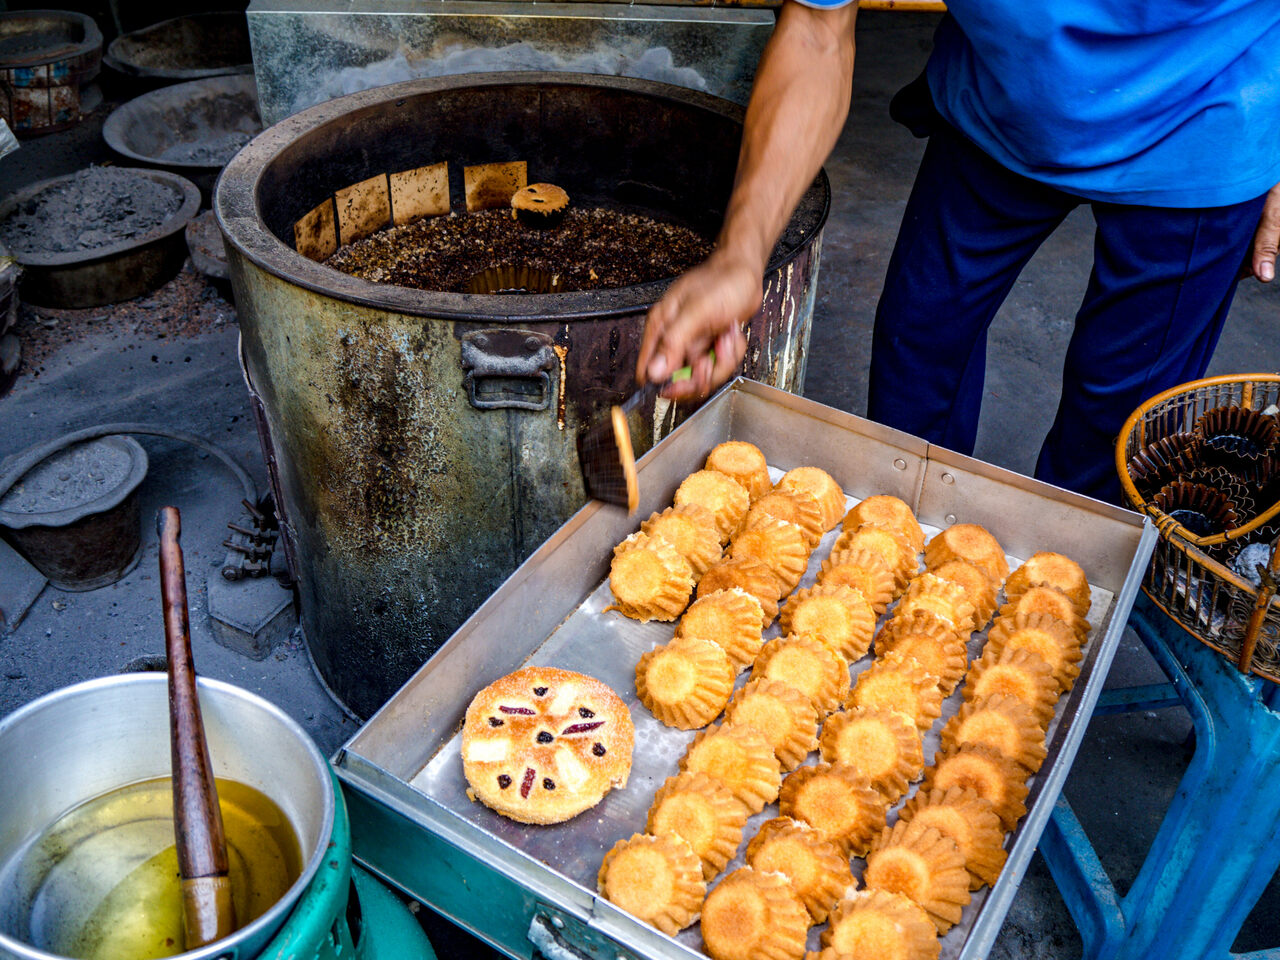 A baker at Kanoom Farung Lan Mea Pao picks freshly baked cakes out of the charcoal brazier and moves them to a metal box to cool.